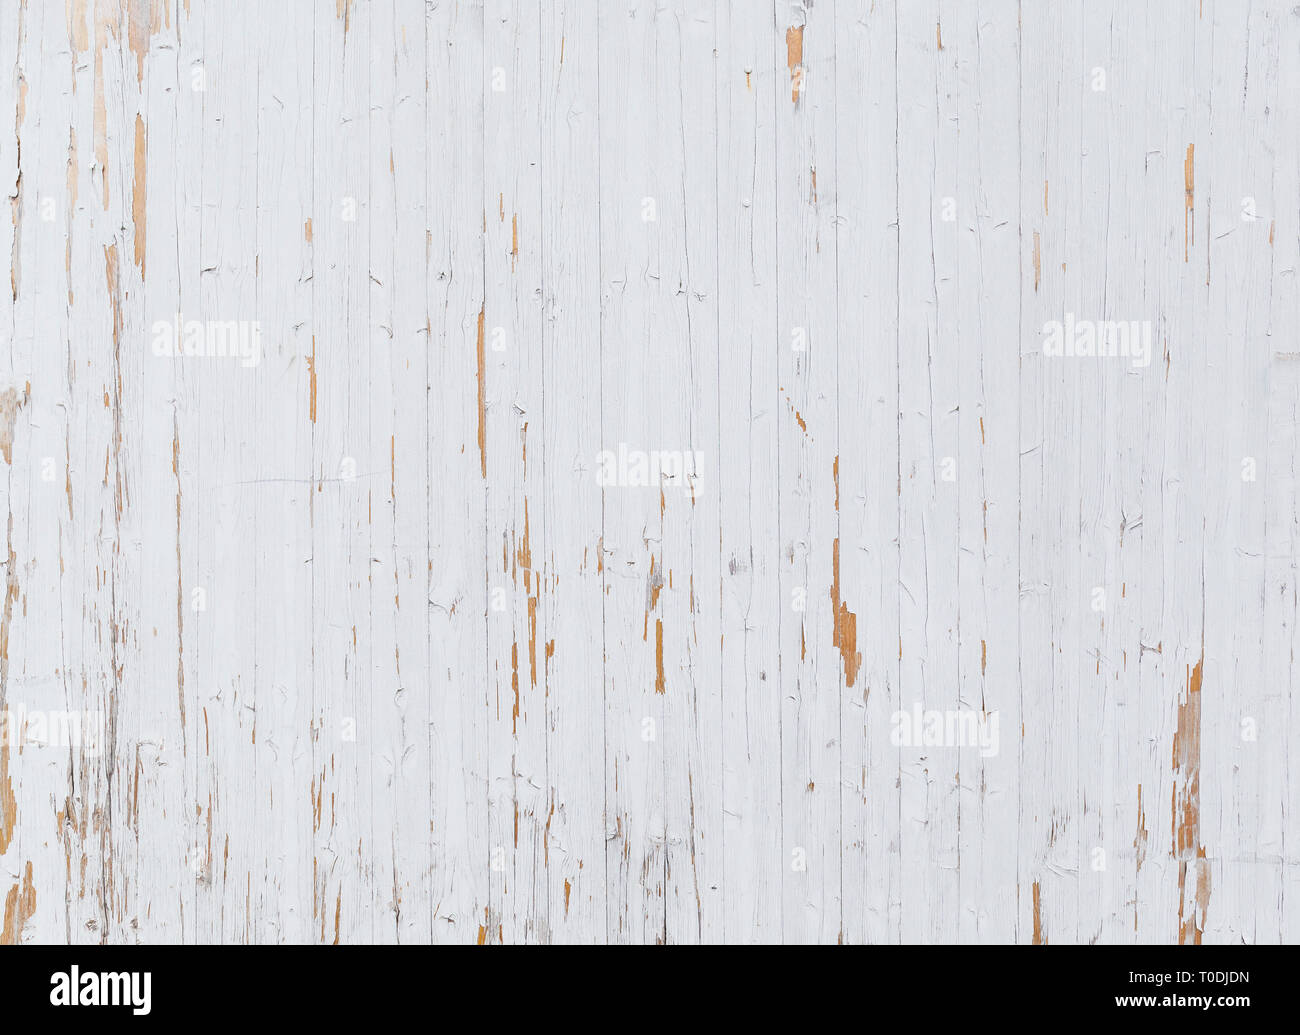 High resolution full frame background of a weathered wooden wall or wood paneling, white paint peeling off. Stock Photo